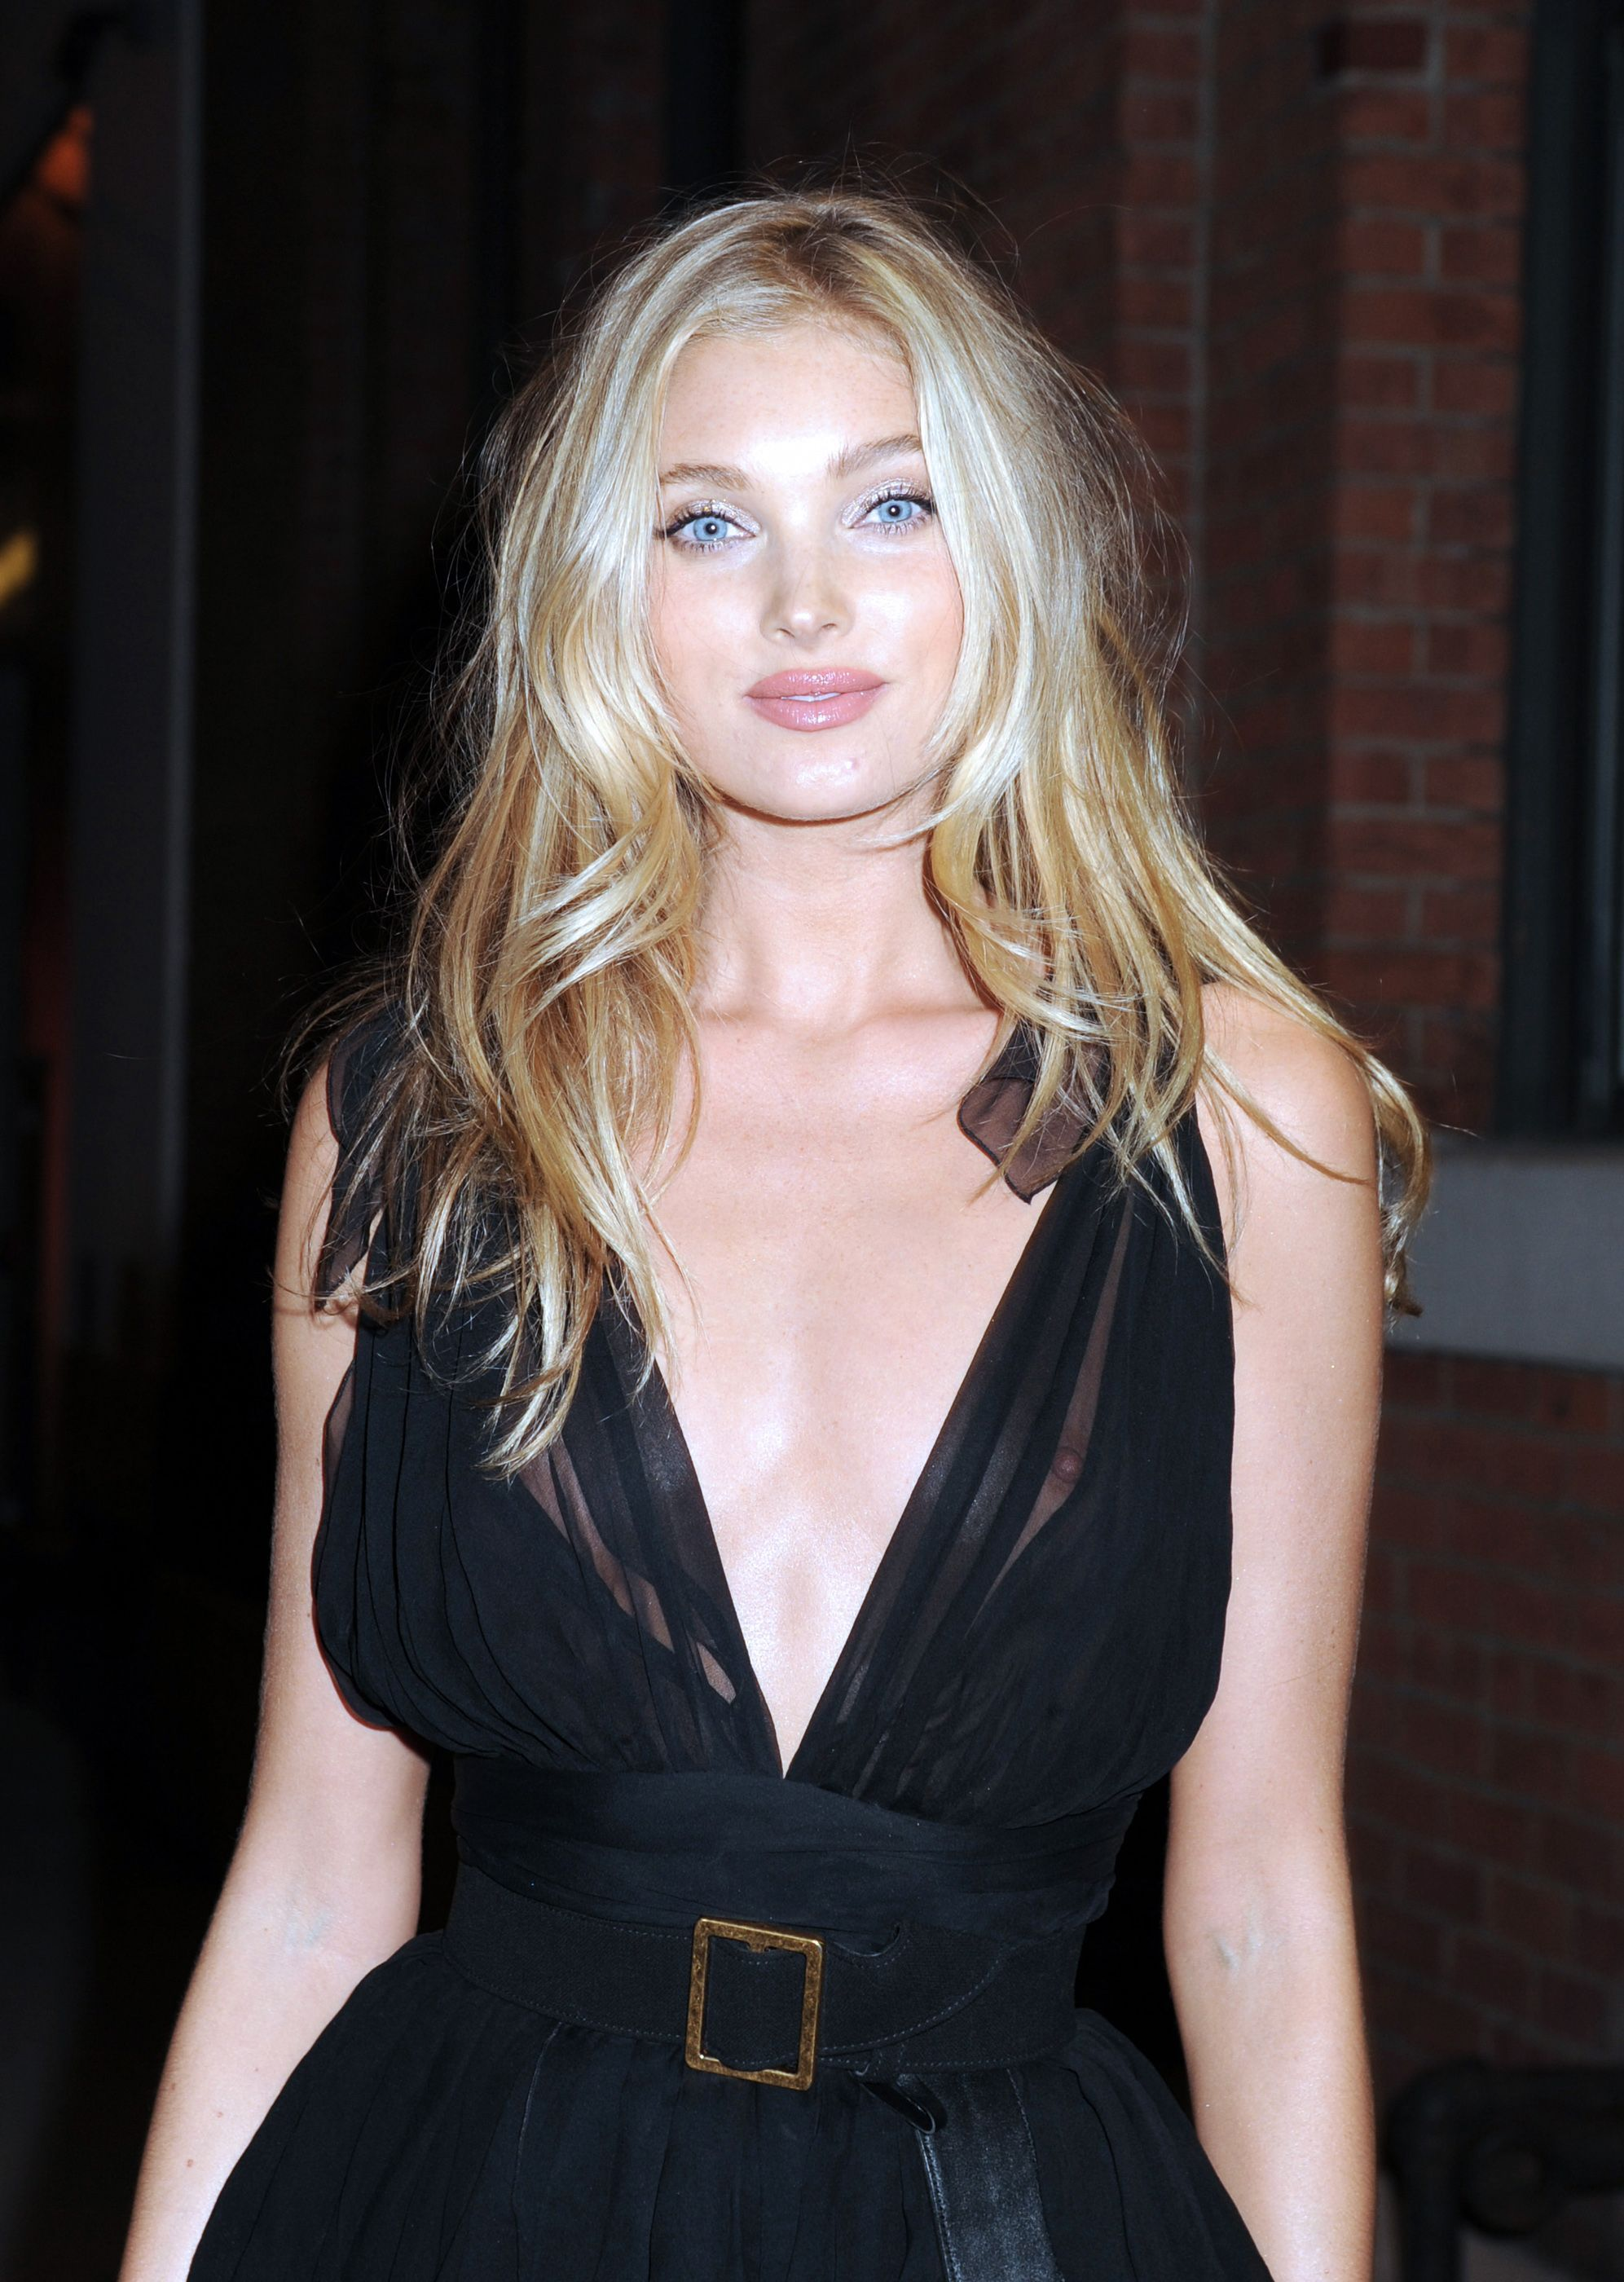 elsa-hosk-braless-30-thefappening-so_